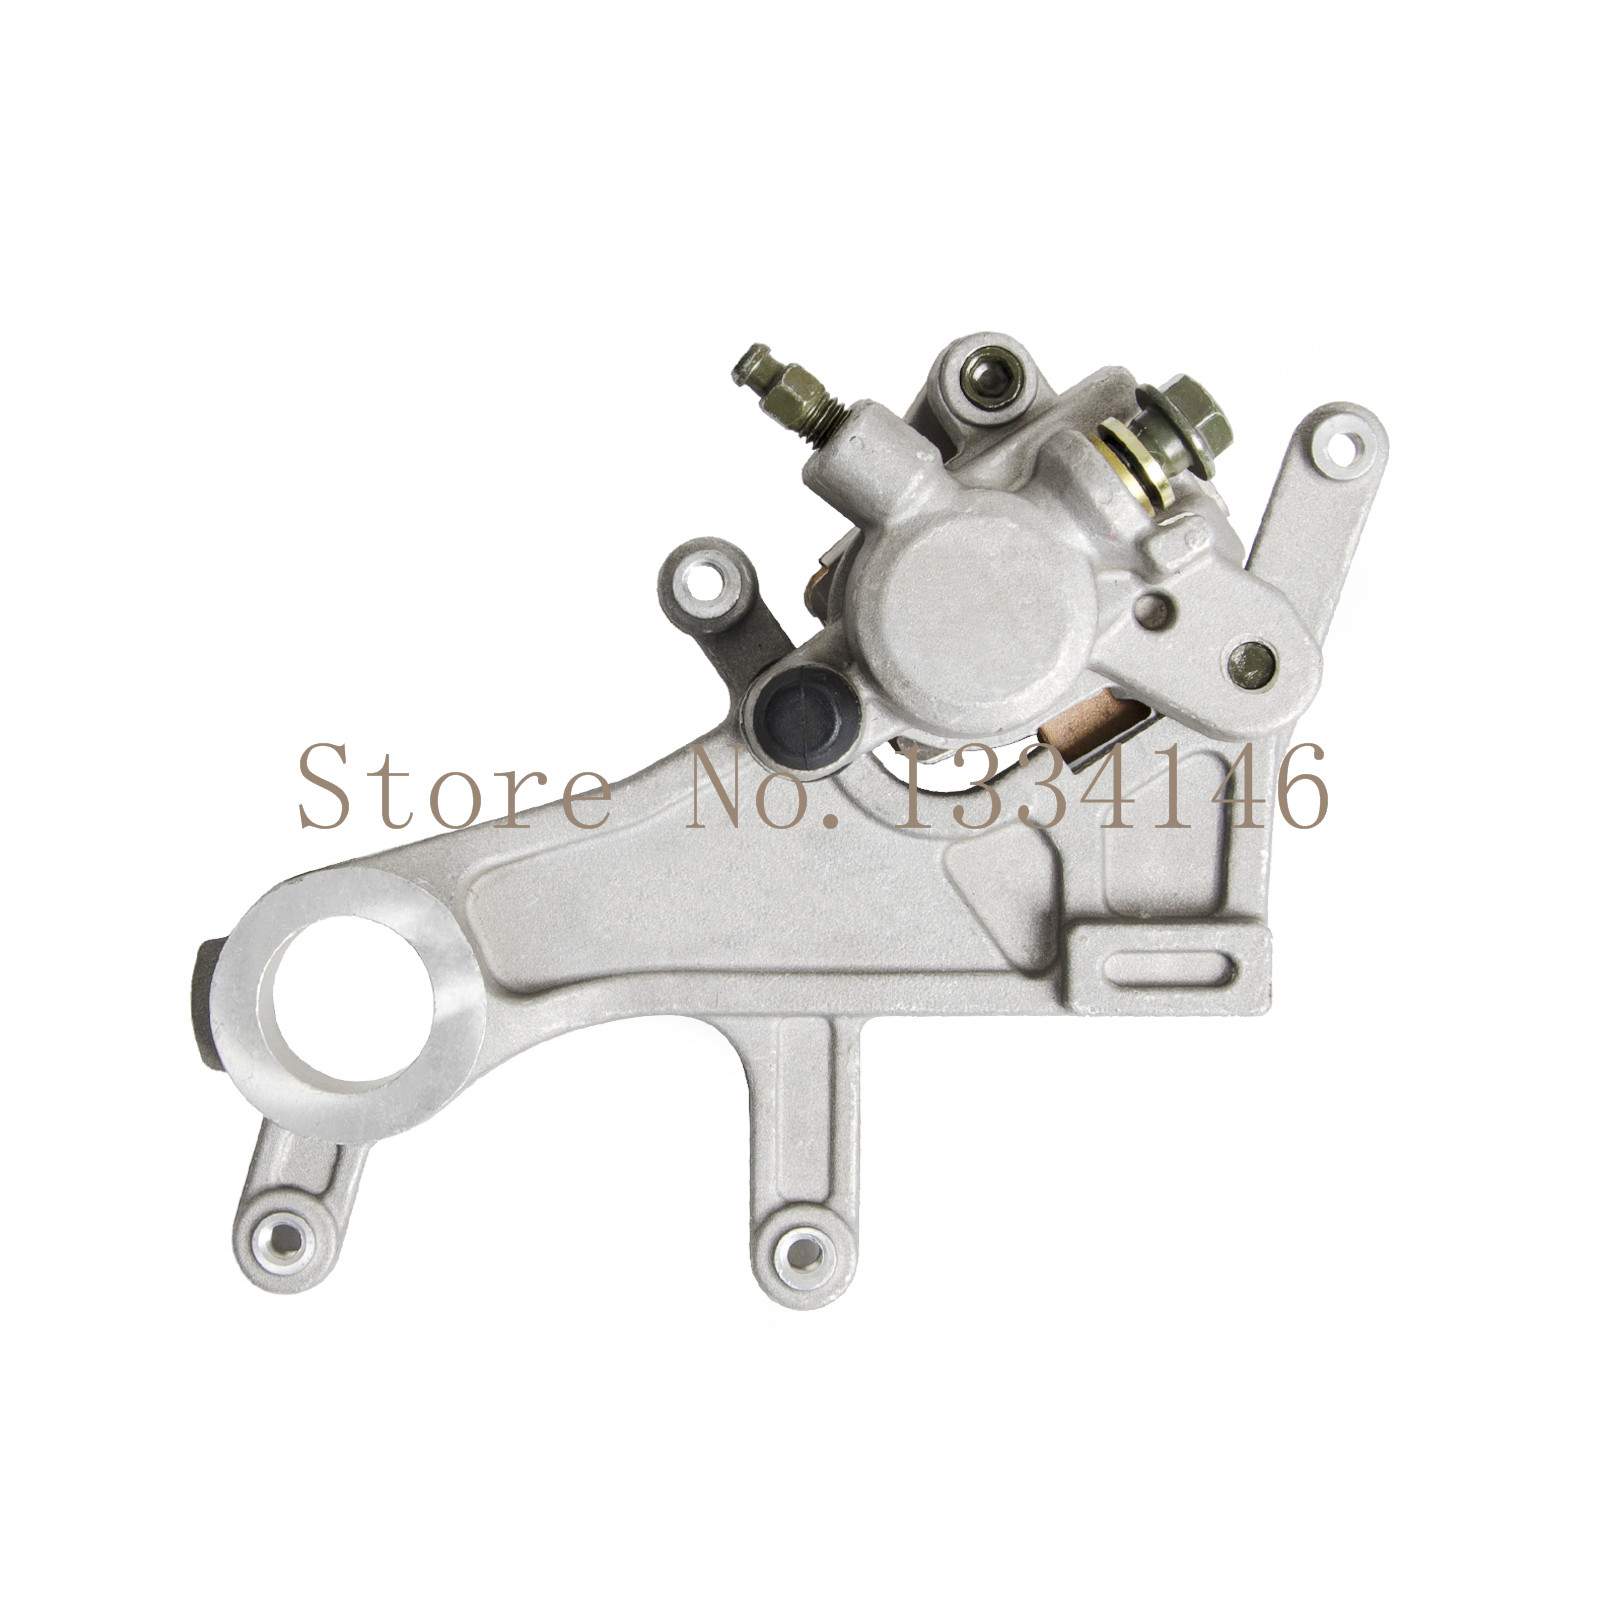 Aliexpress.com : Buy Motorcycle Rear Brake Caliper For Honda CRF450R 2002  2015 2016 CRF450X CRF 450R 450X 2005 2006 from Reliable rear brake caliper  ...